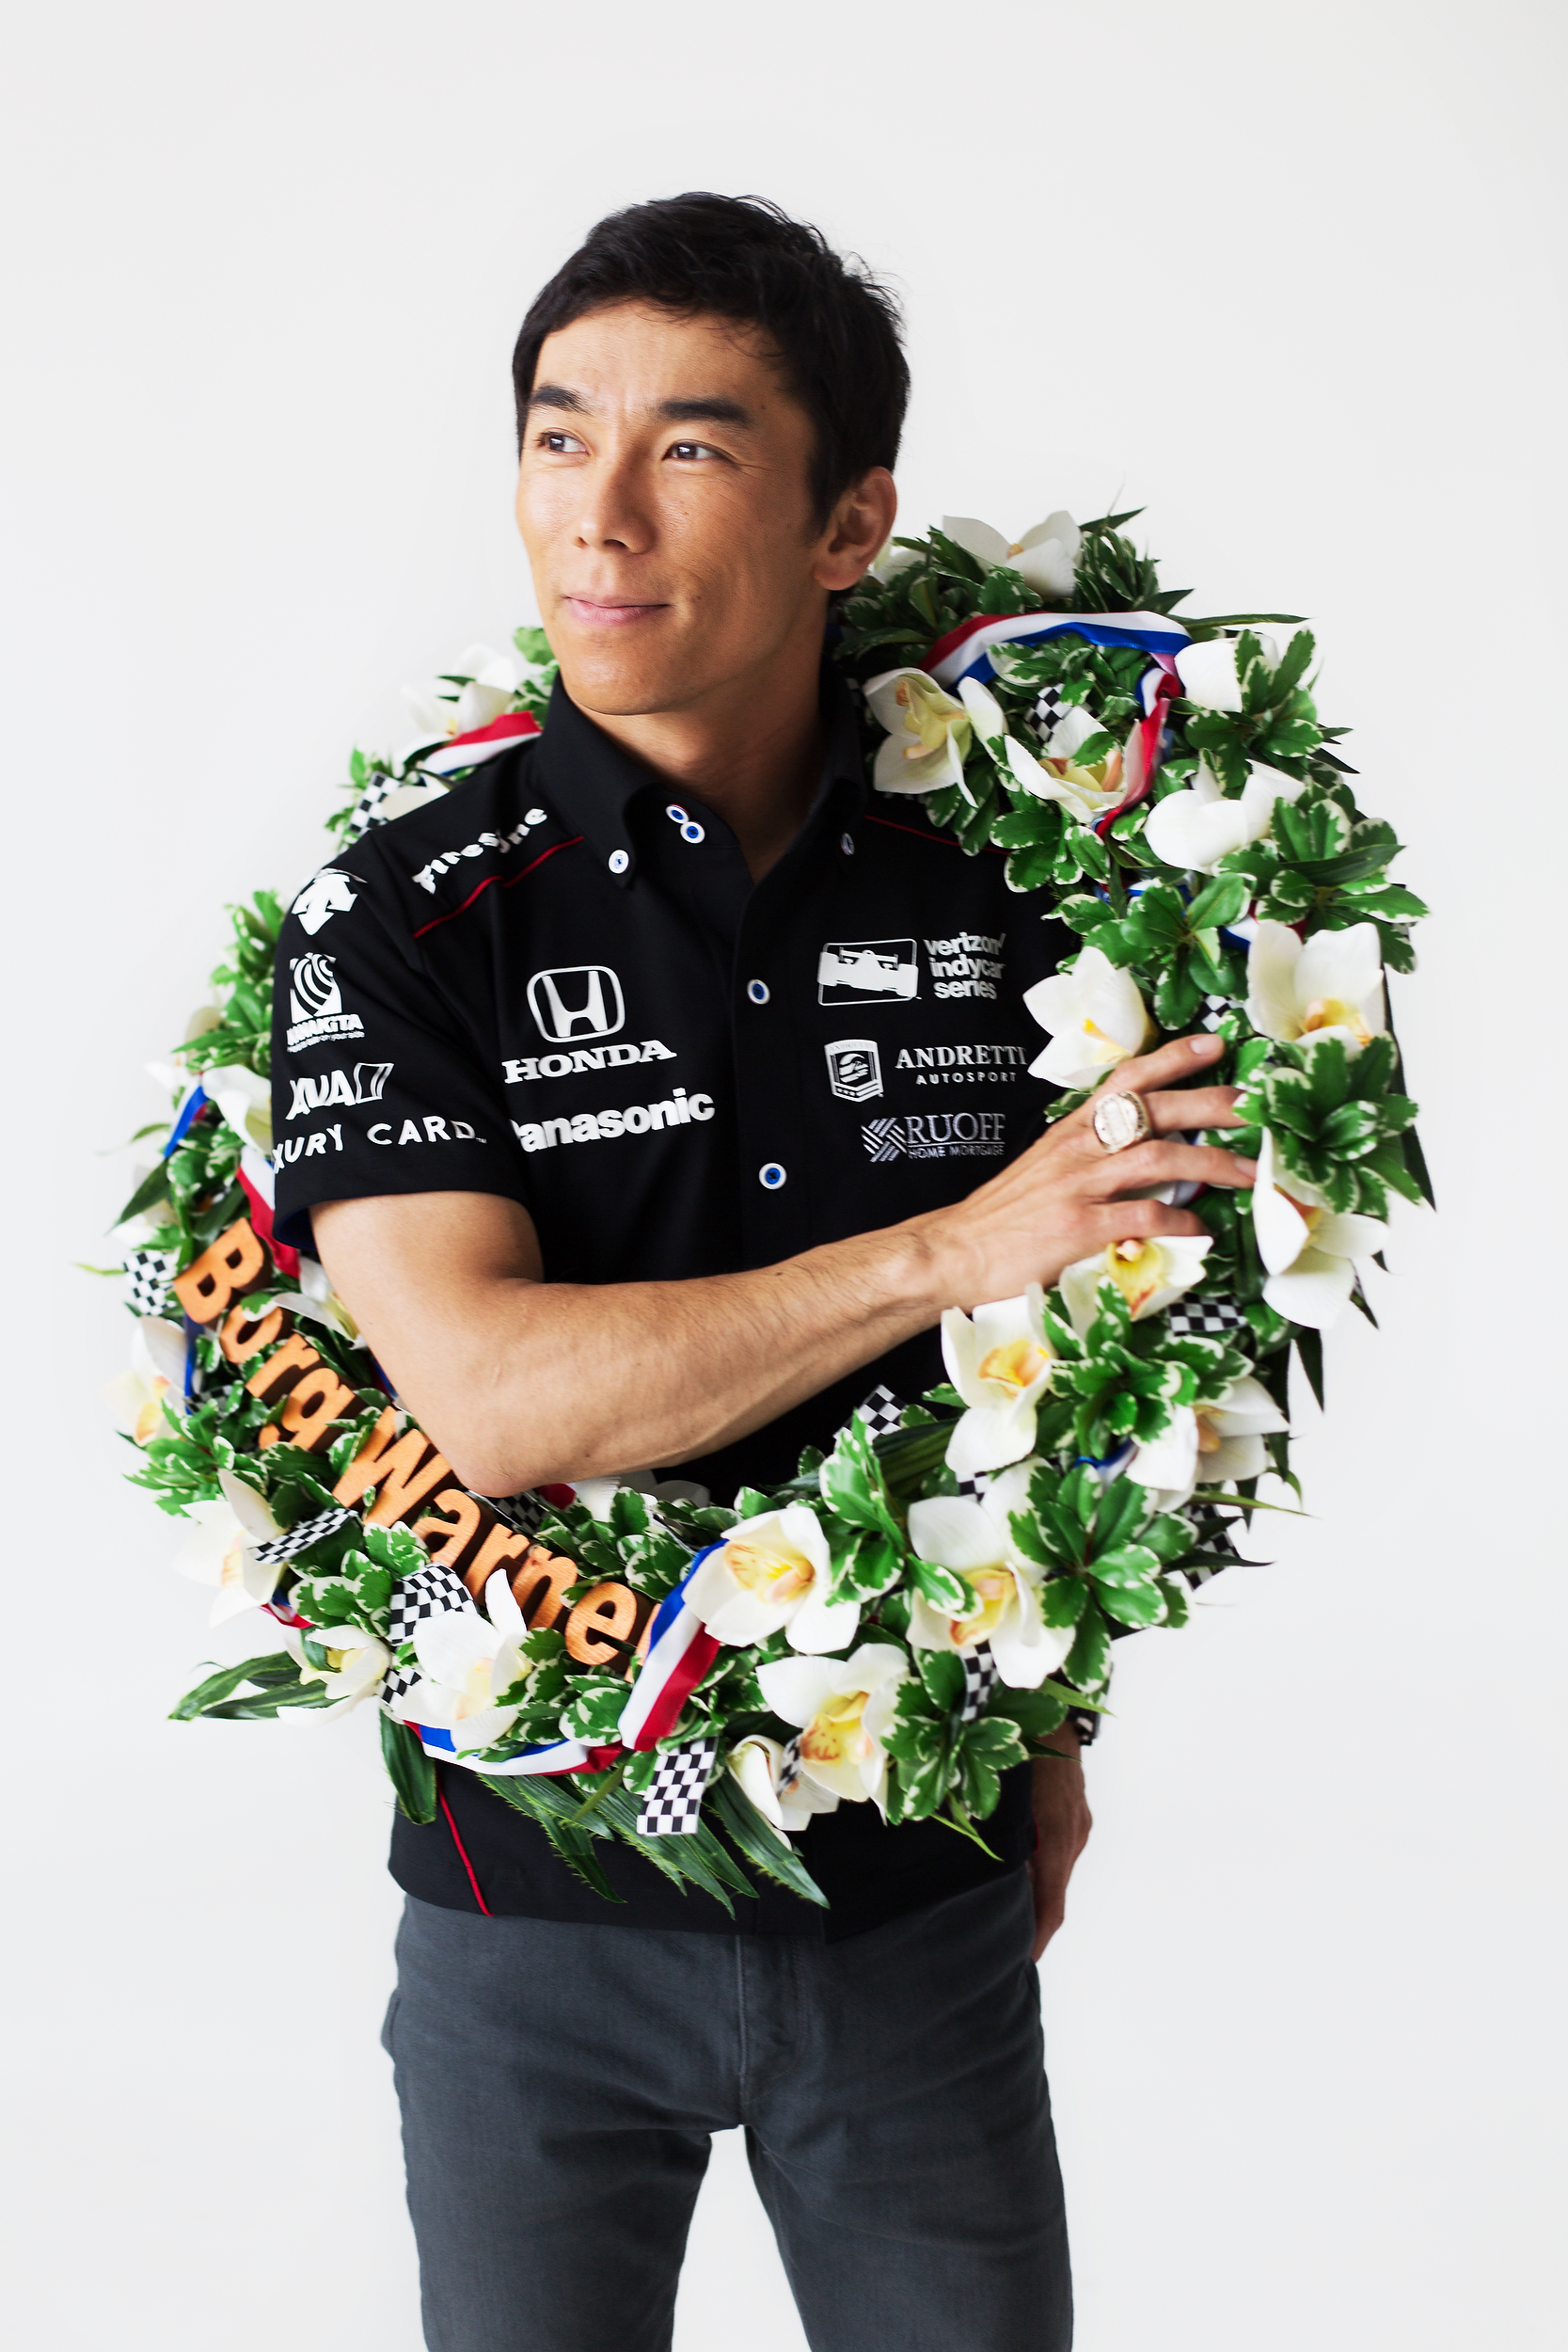 IndyCar driver and 2017 Indianapolis 500 winner Takuma Sato of Andretti Autosport is photographed at The Players' Tribune on May 30, 2017 in New York, New York. (Photo by Bryan Bennett/The Players' Tribune)